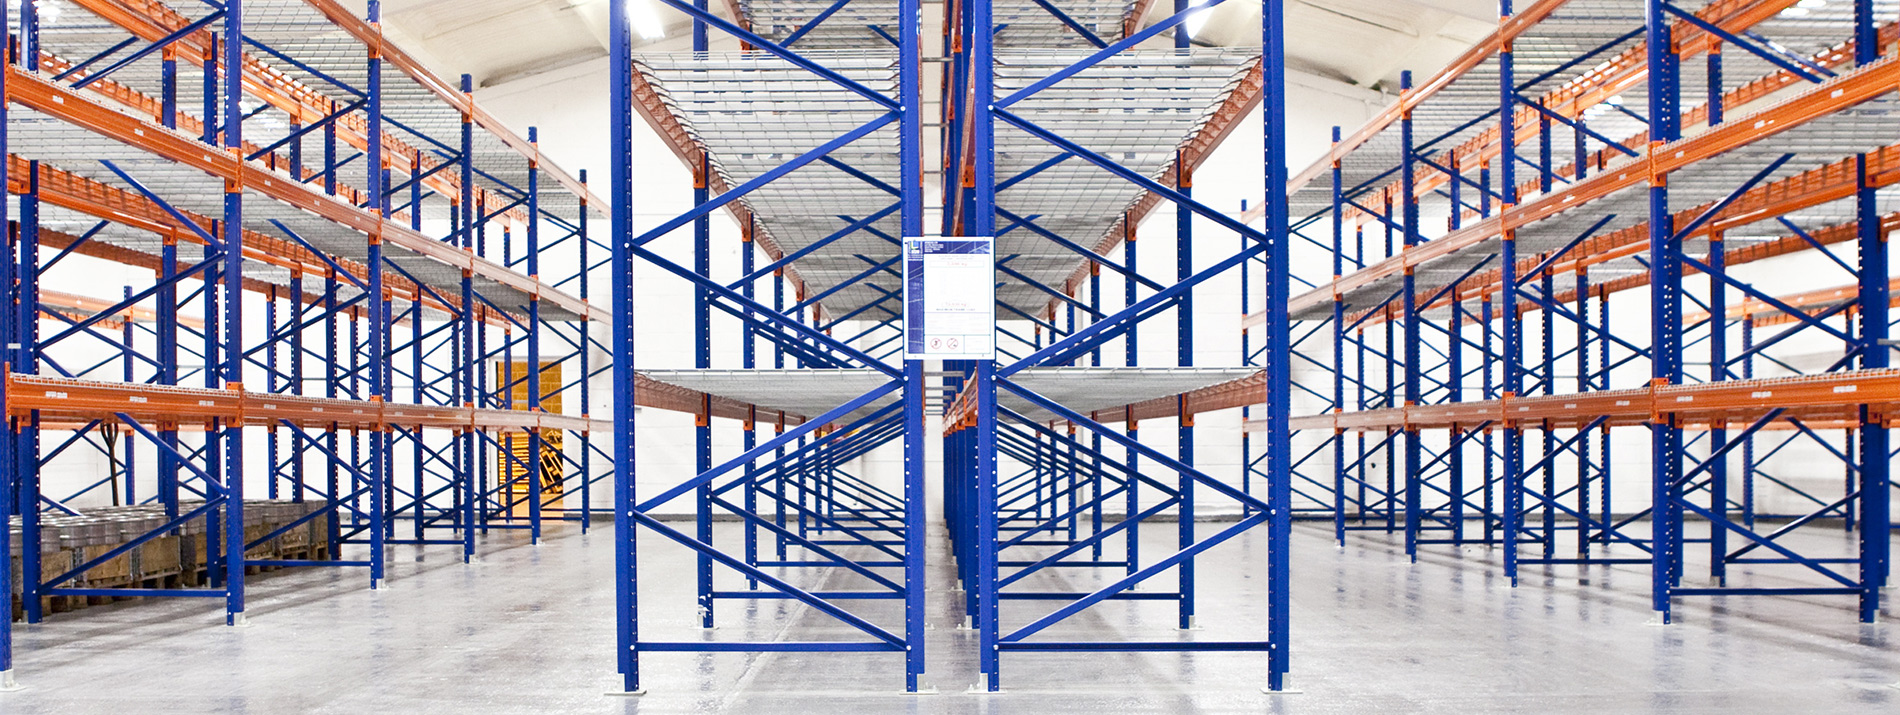 services-warehouse-label-install-racks-orange-warehouse-brand-new-dls